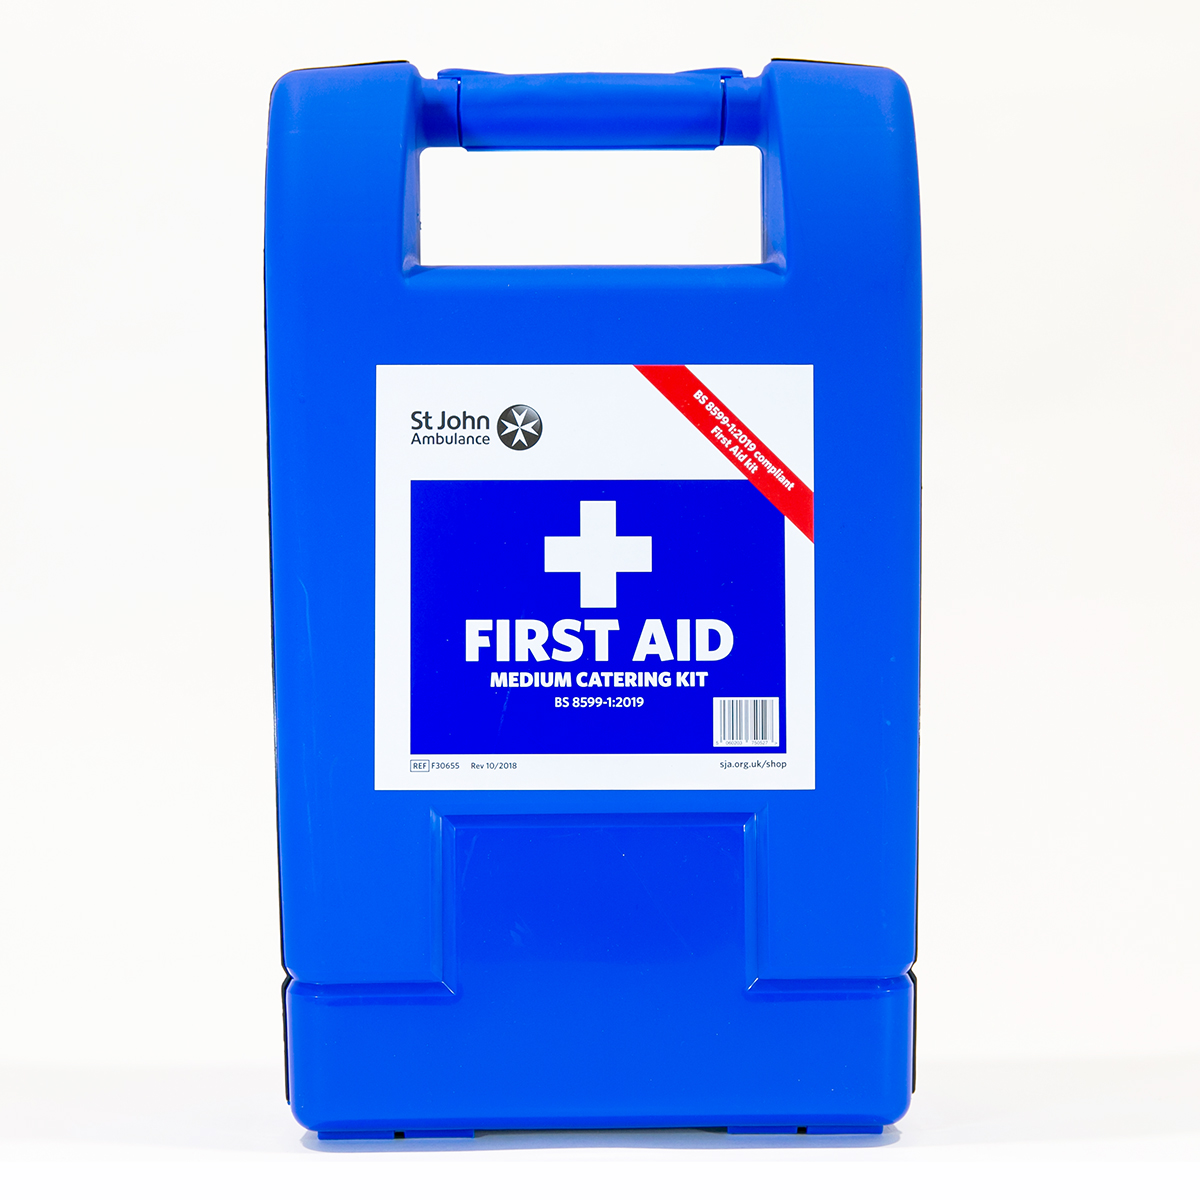 St John Ambulance Medium Alpha Catering Workplace First Aid Kit BS 8599-1:2019